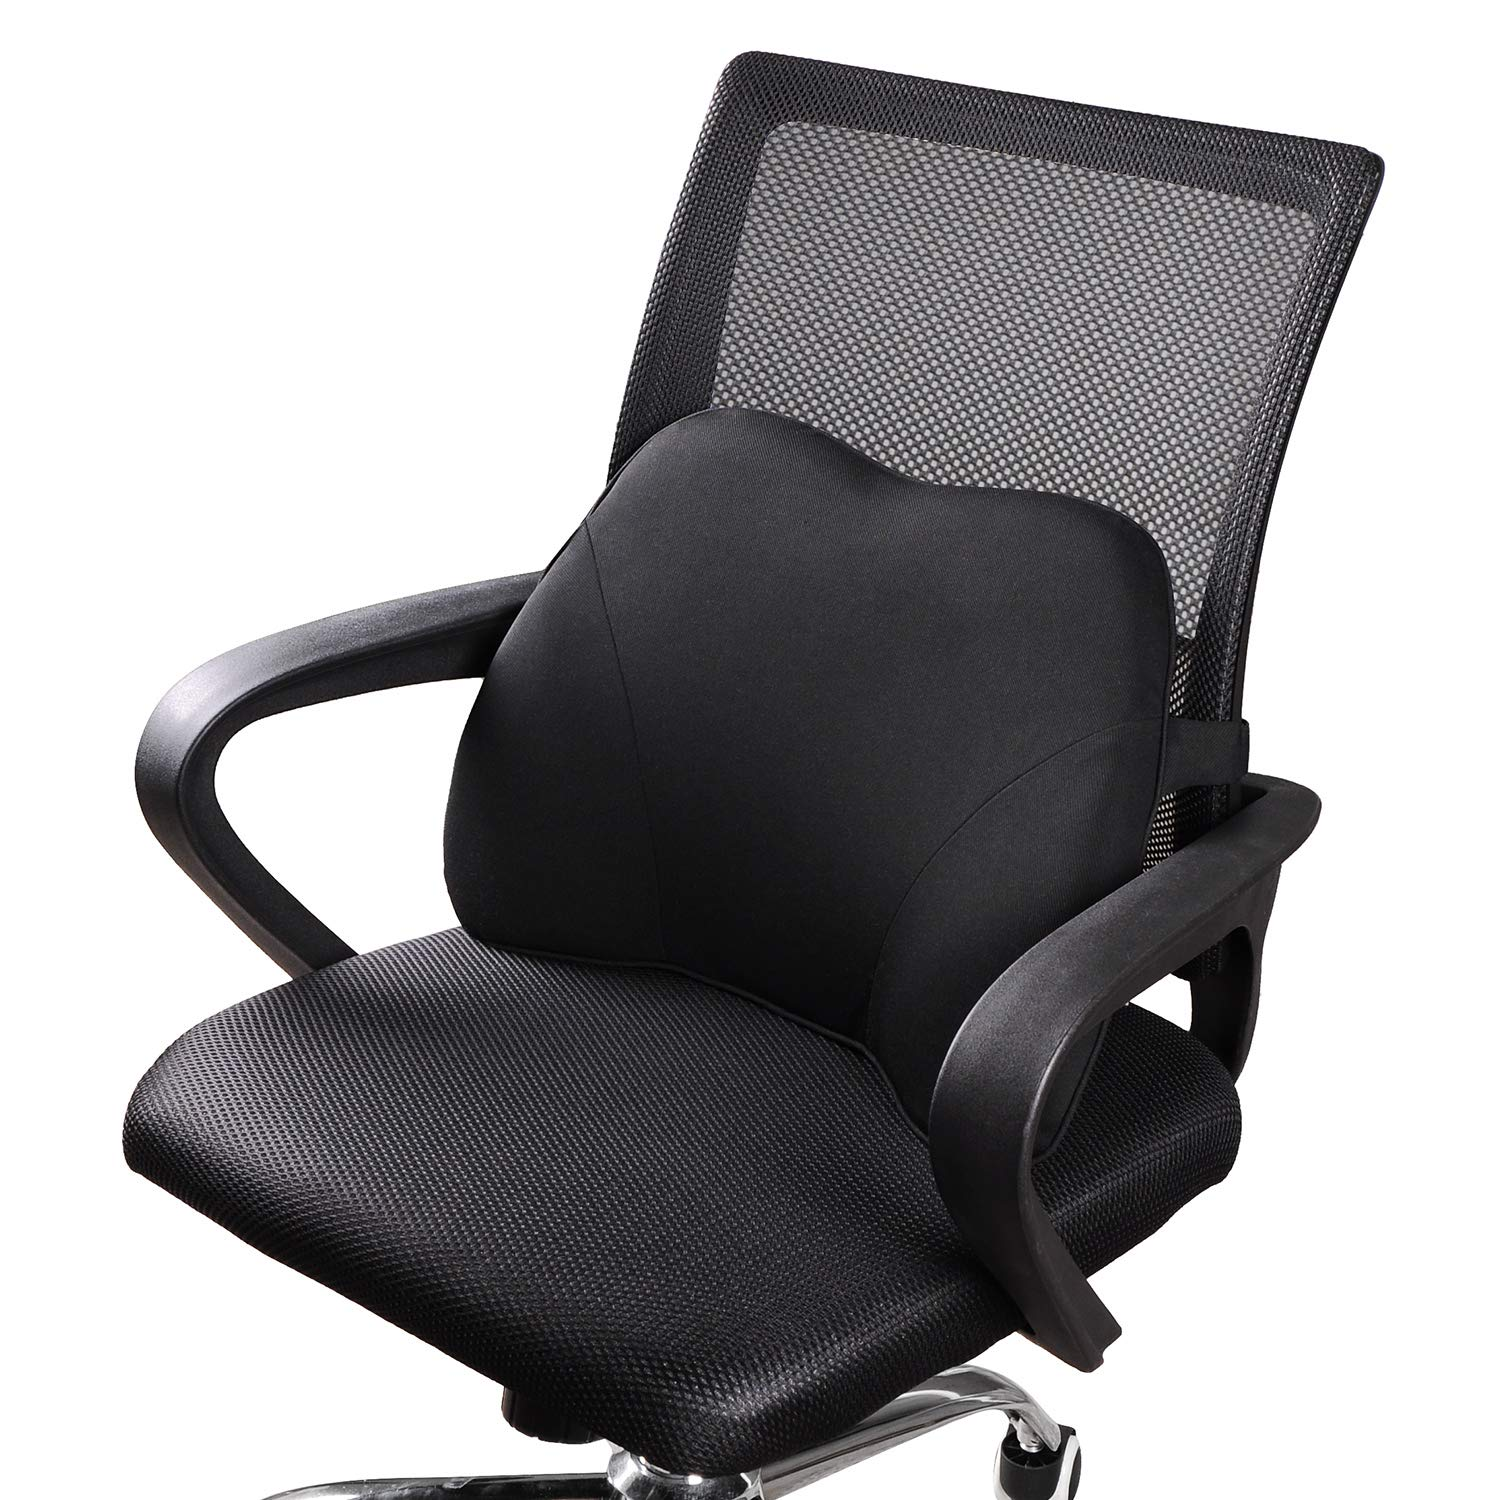 Dreamer Car Mini Supportive Chair Cushion Lumbar Pillow Design for Lower Back Pain Relief, Memory Foam Back Support for Office Chair/Computer Chair/Home/etc, Black by Dreamer Car